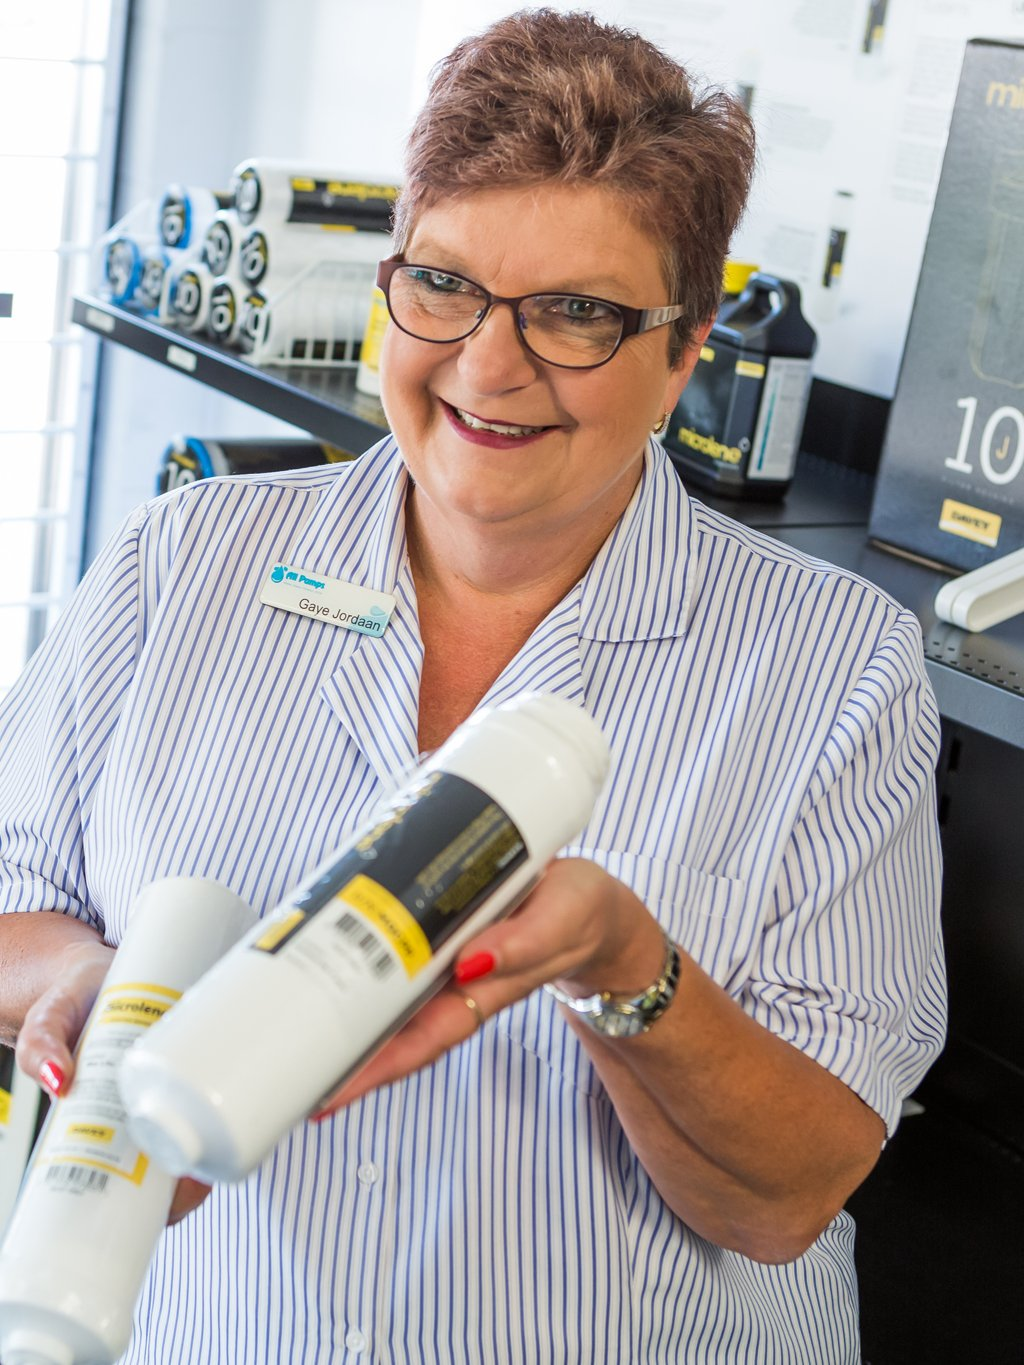 Gaye Jordaan, Warehouse, Stock Control and Health & Safety